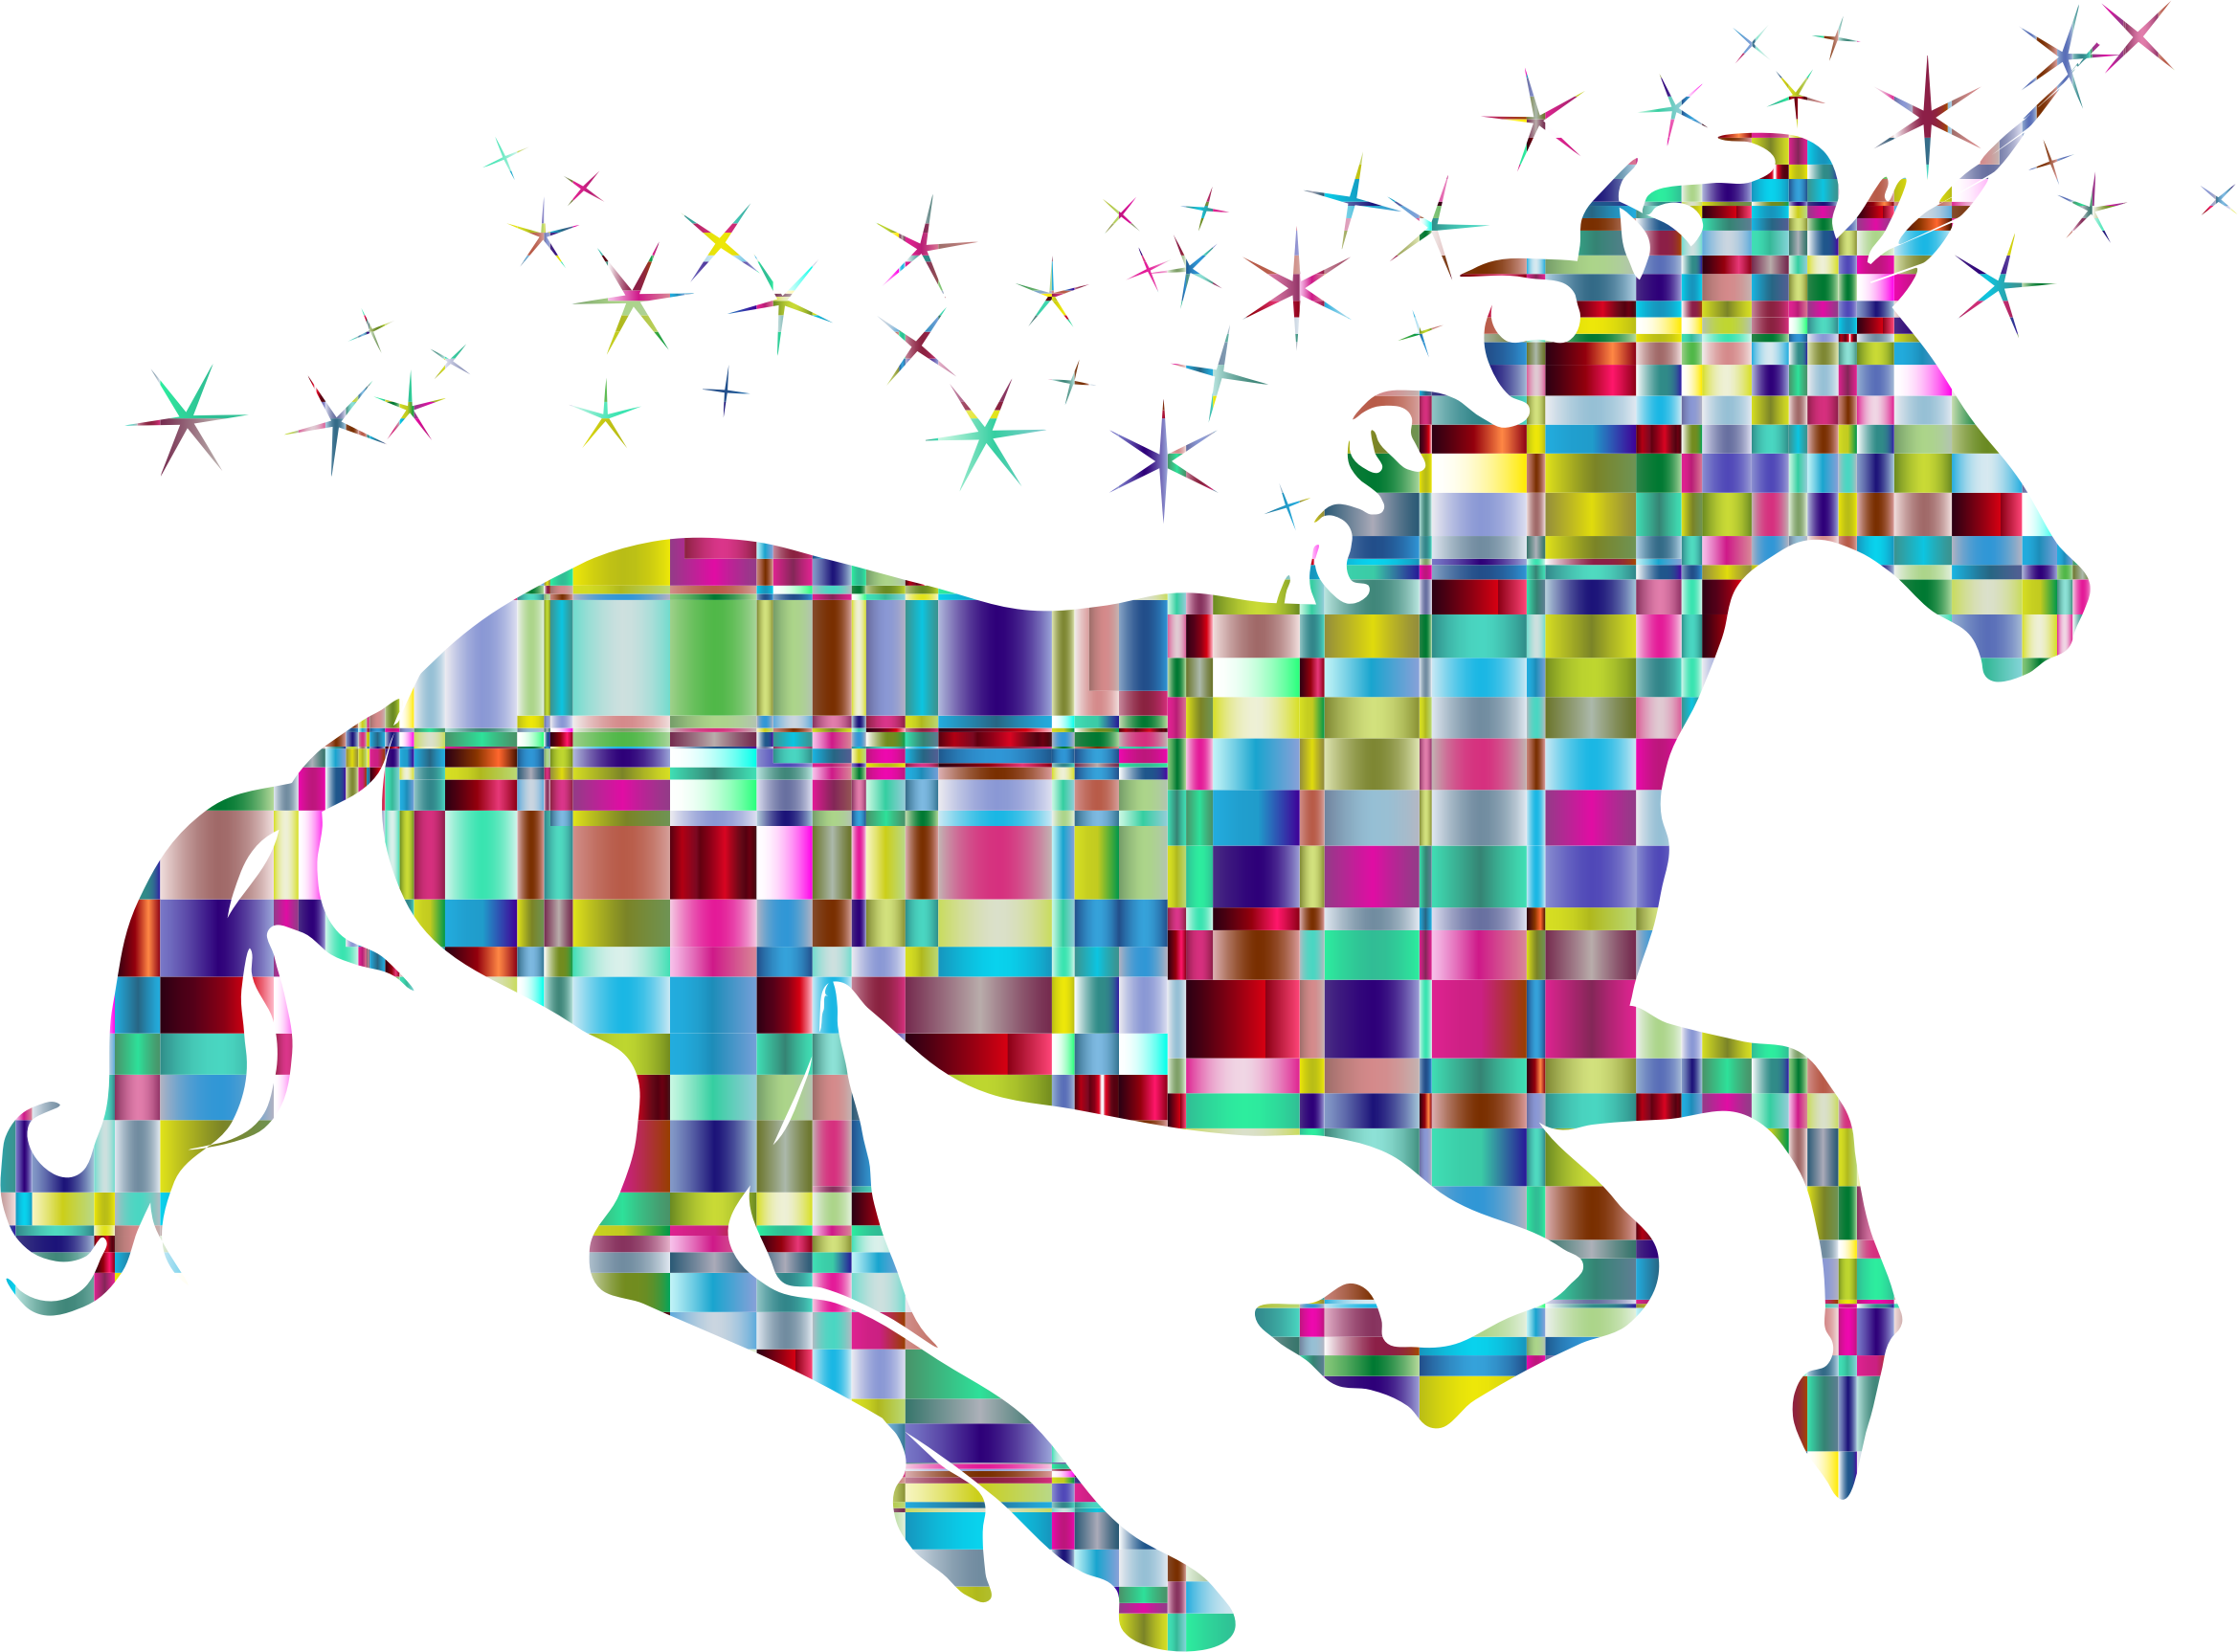 Chromatic Checkered Crystalline Magical Unicorn by GDJ